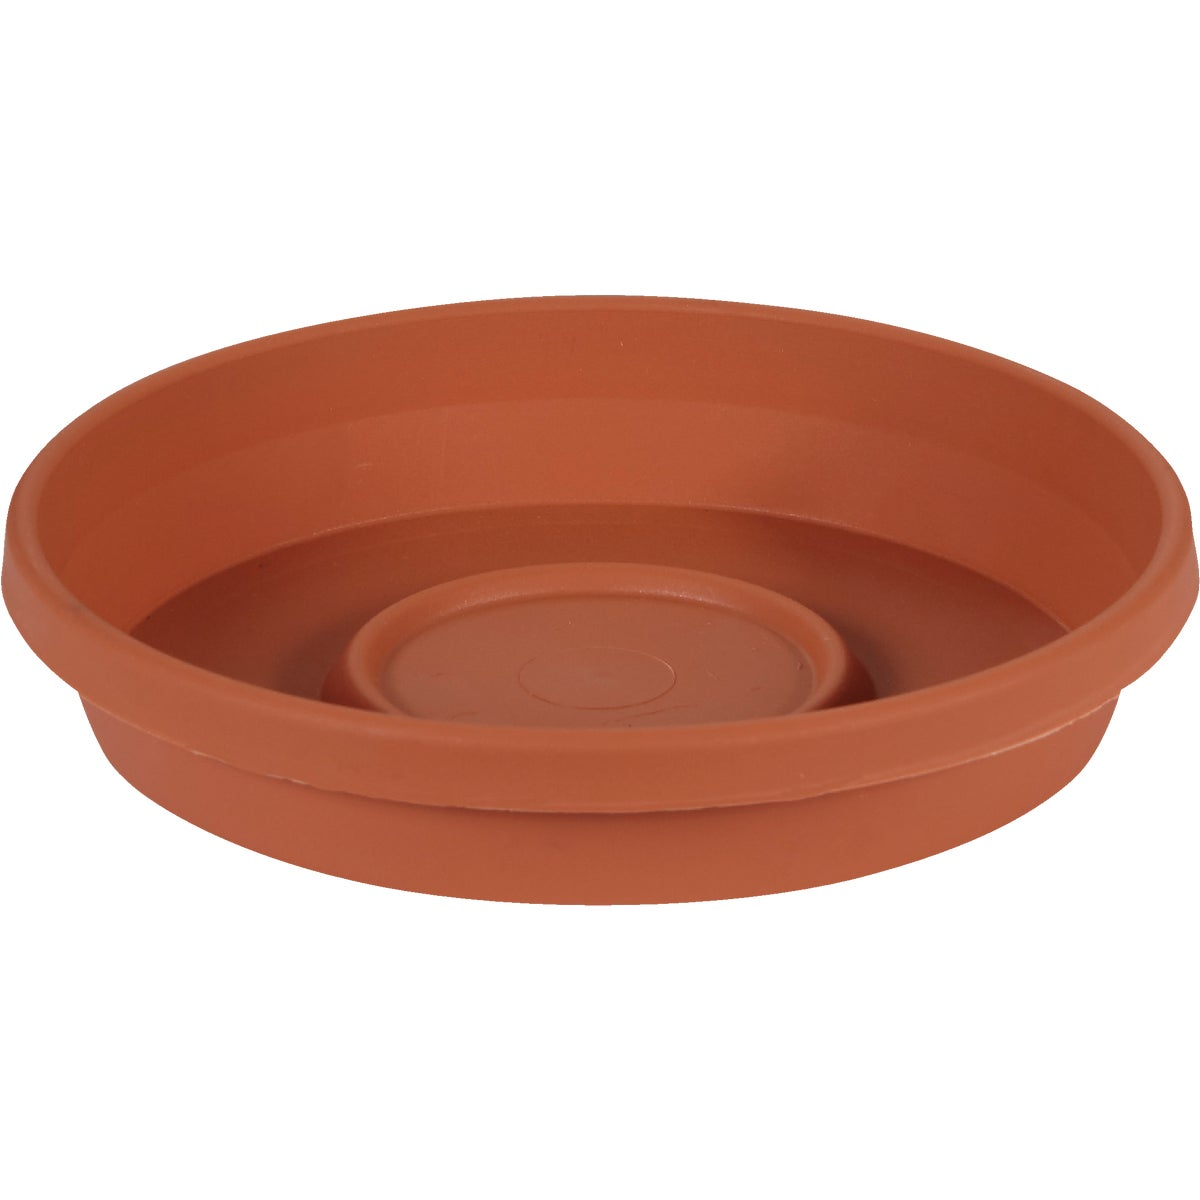 "20"" CLAY POLY SAUCER - 51020C by Fiskars Brands Inc"